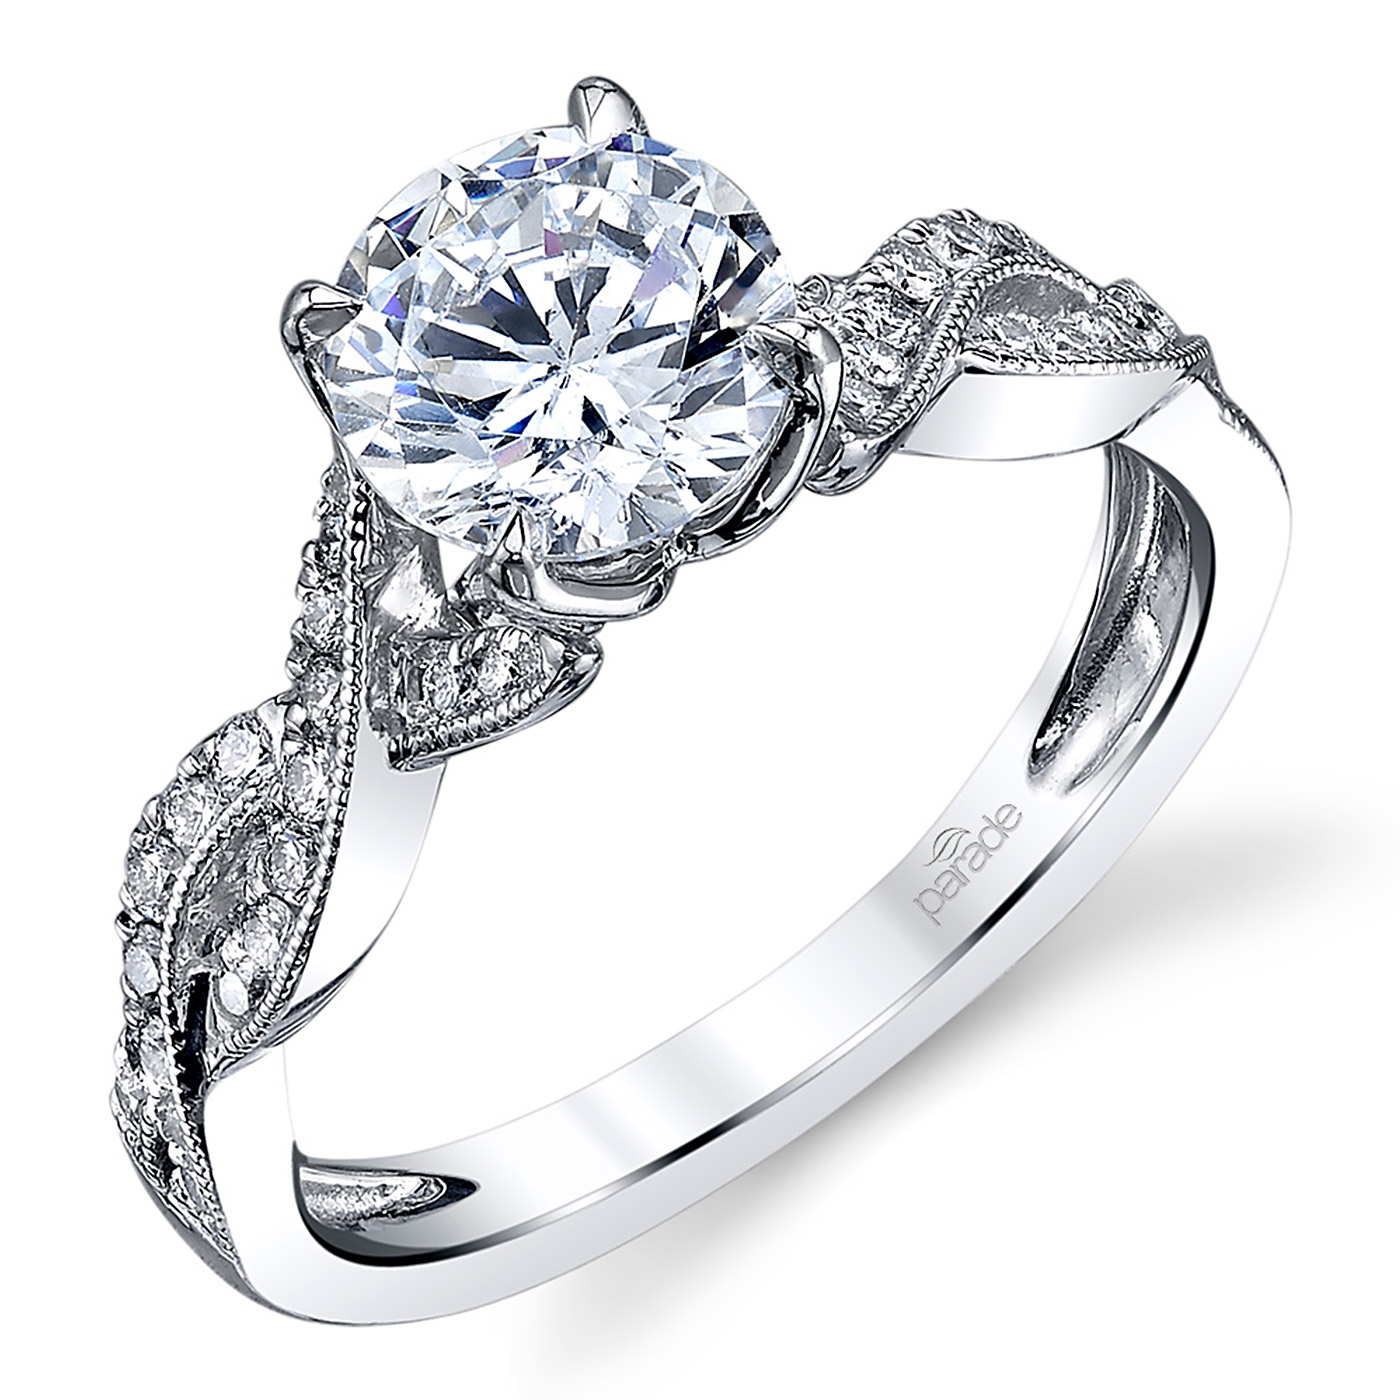 Parade Hemera Bridal 18 Karat Diamond Engagement Ring R3967